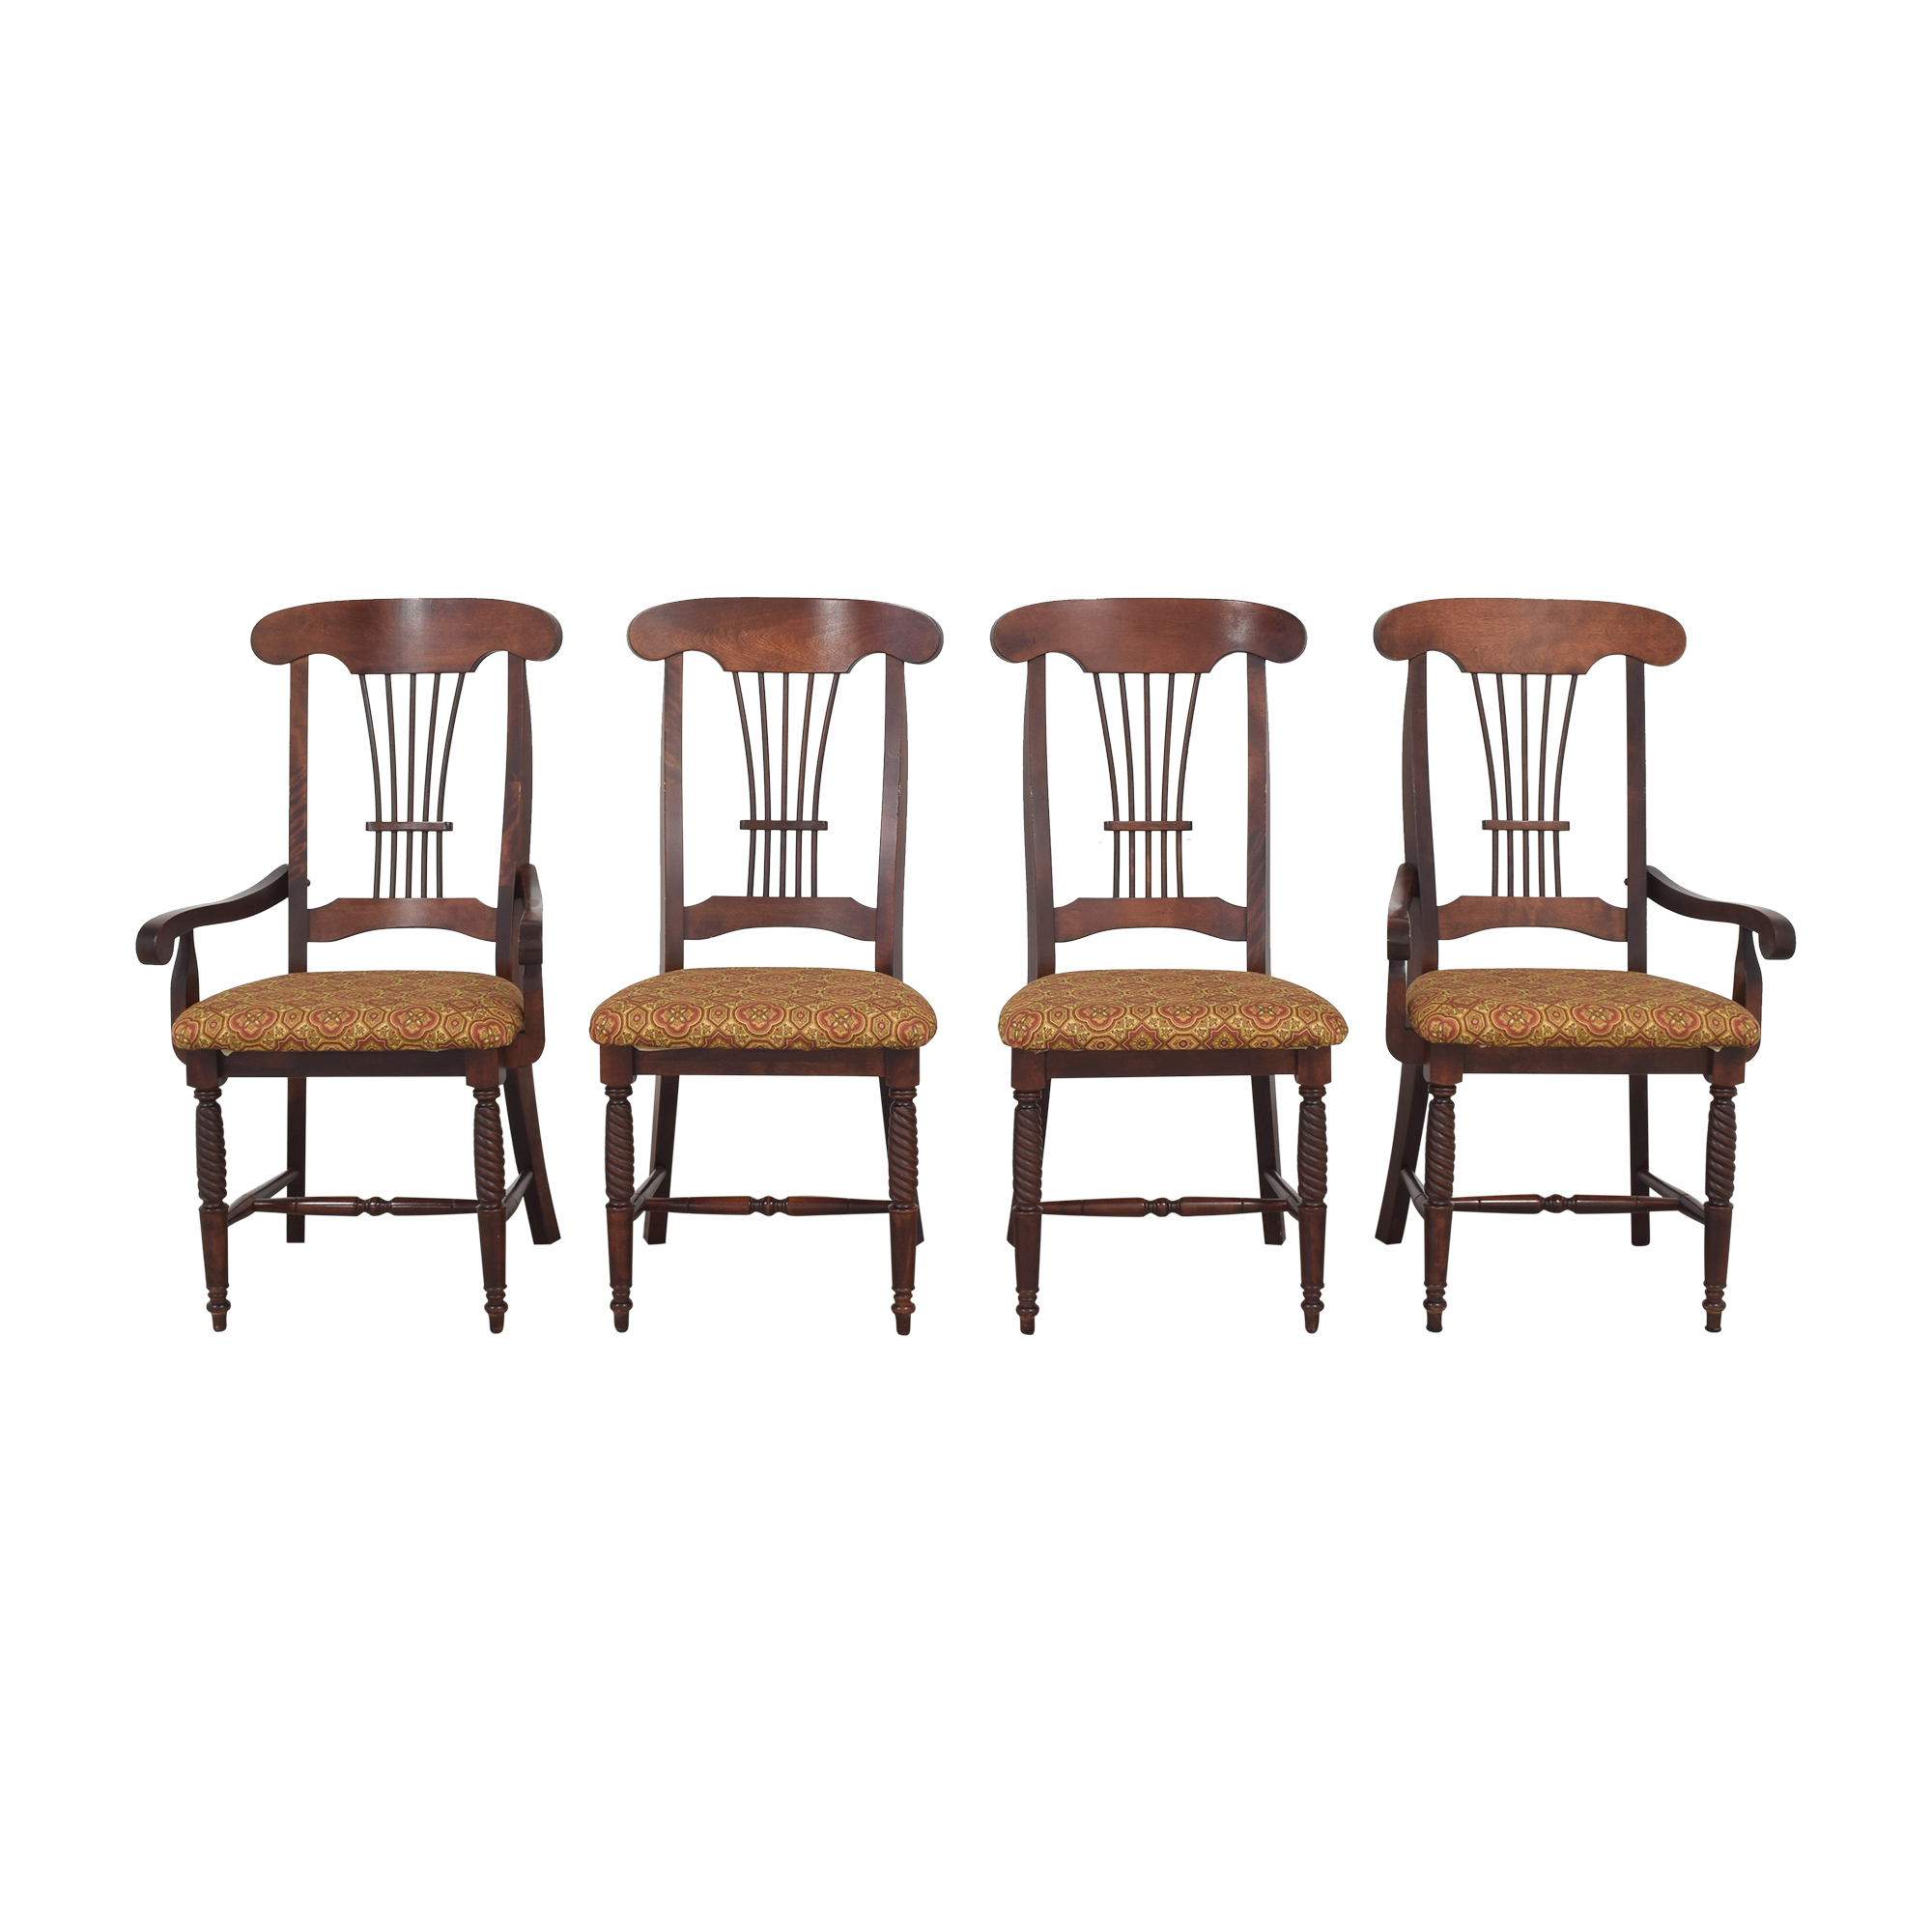 buy Canadel Upholstered Seat Dining Chairs Canadel Chairs